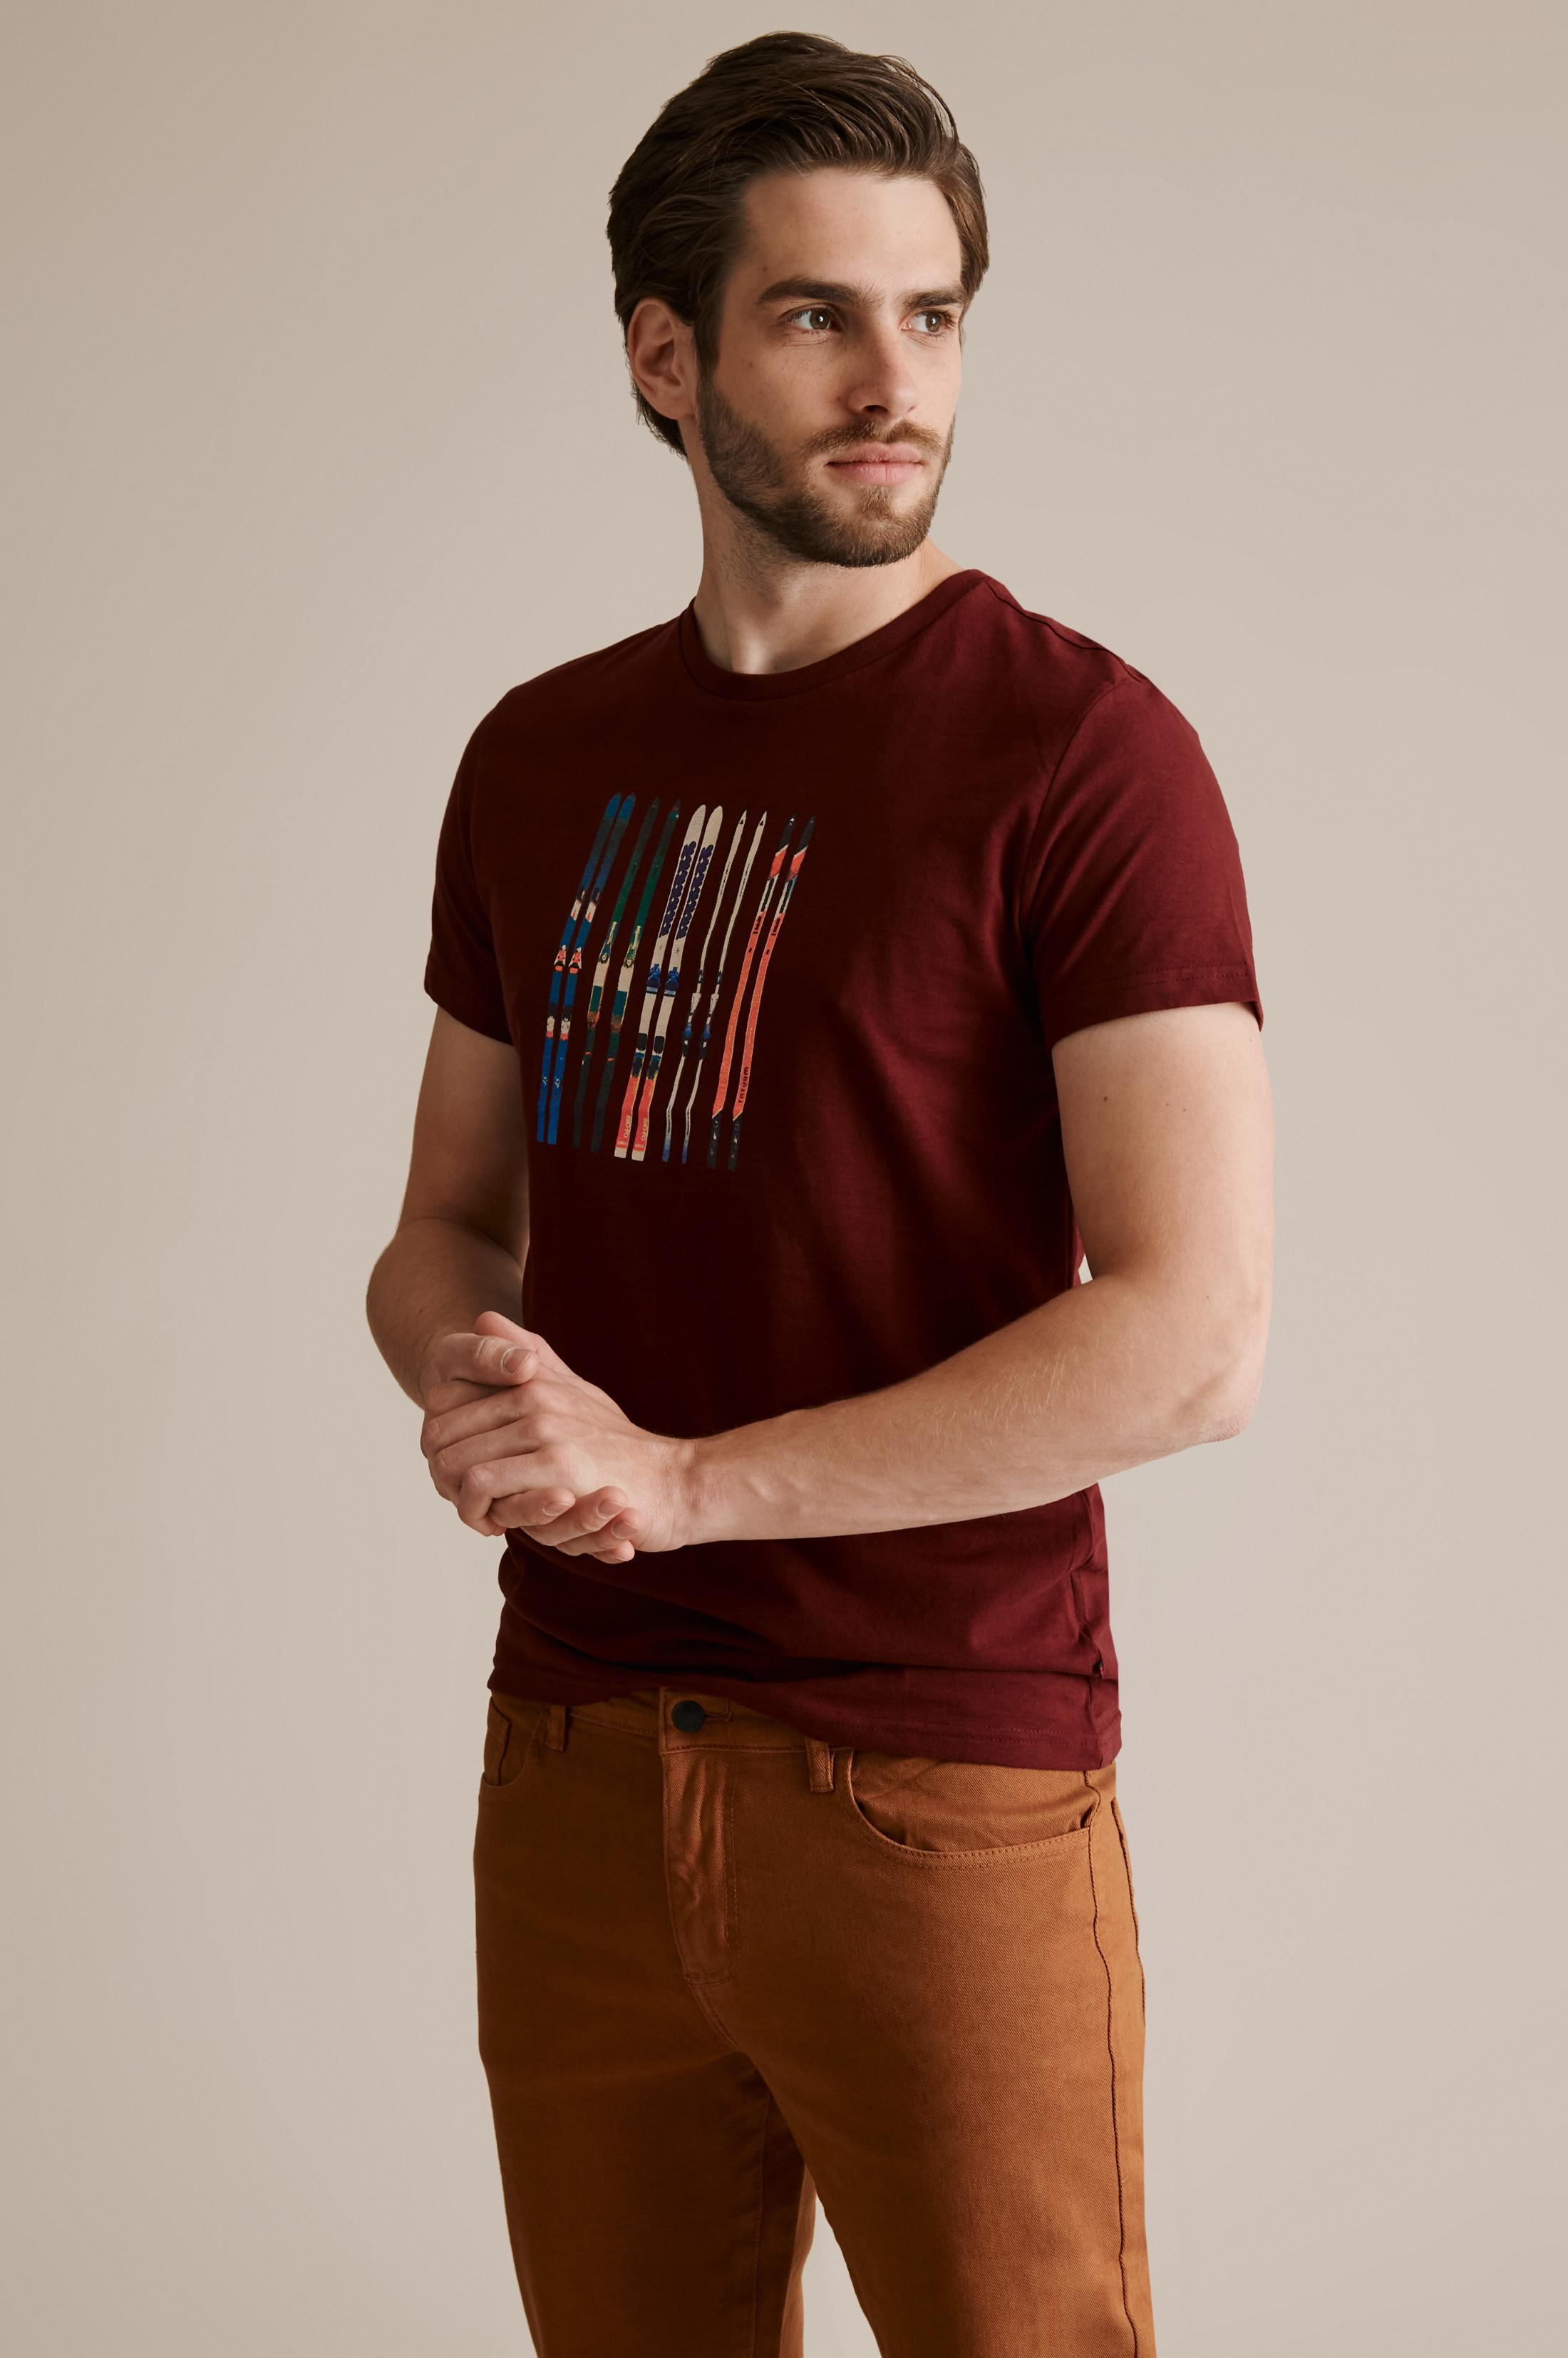 MEN'S T-SHIRT WITH A PRINT MIKIN 25